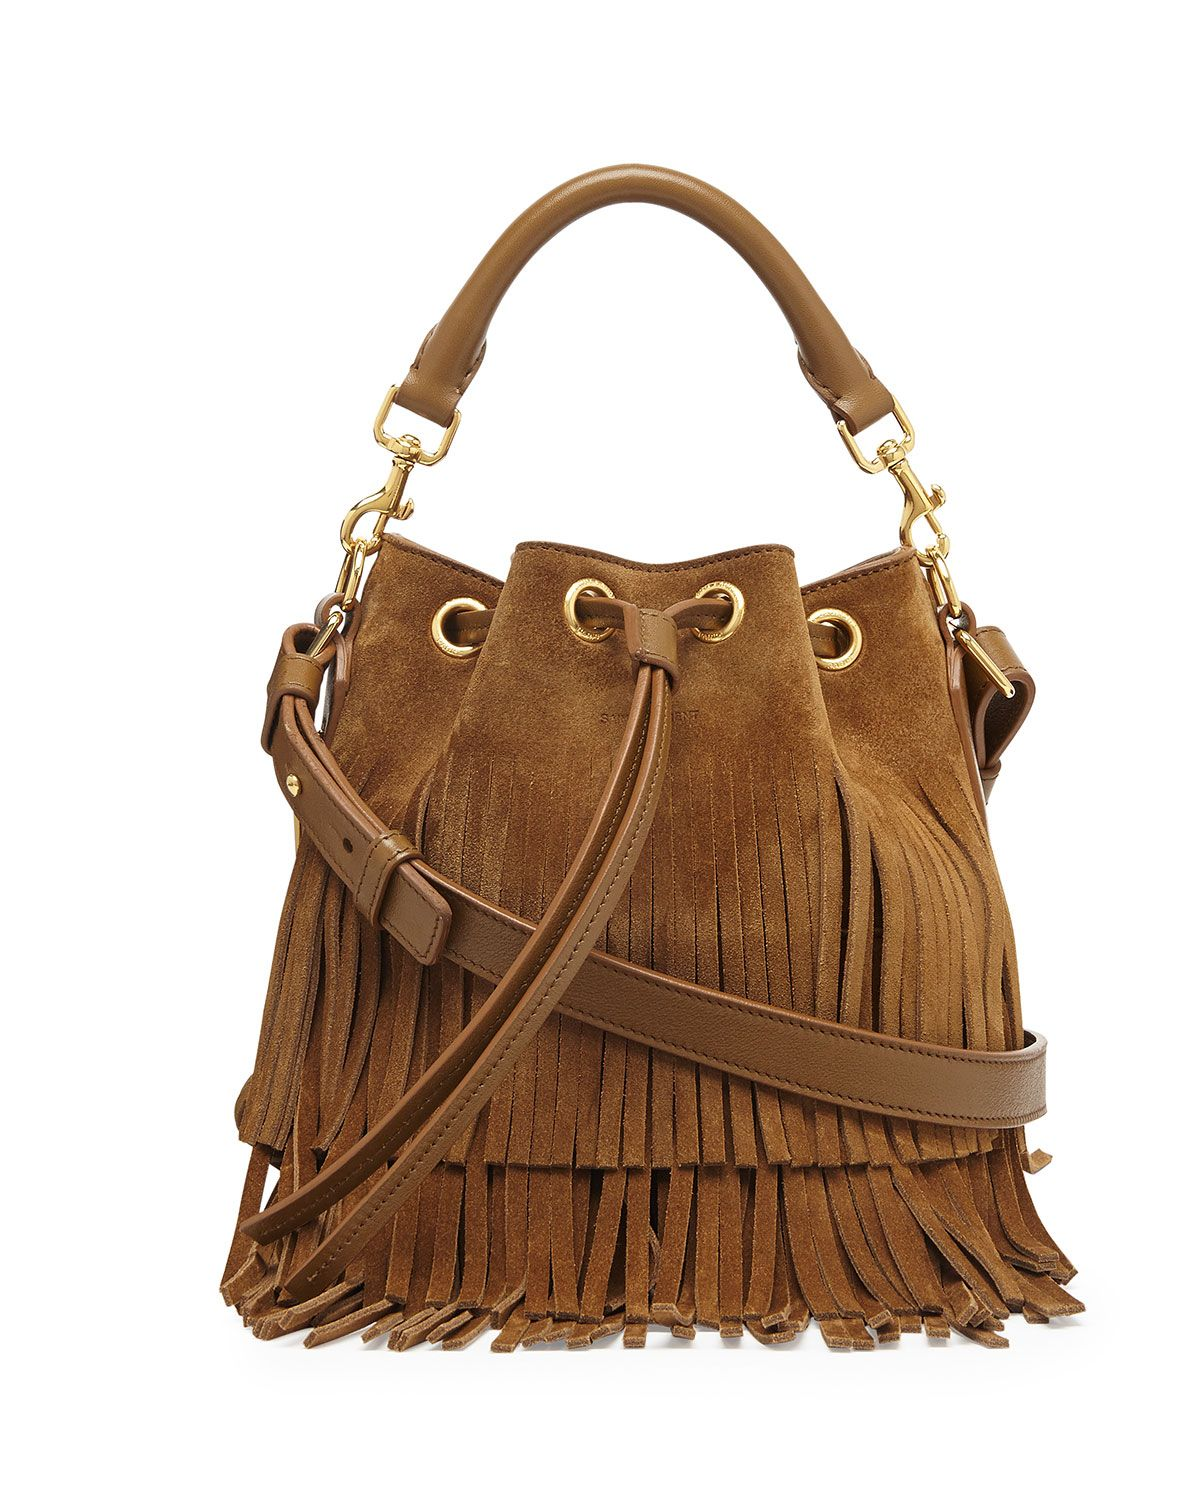 cc8e291e36 Saint Laurent Small Suede Fringe Bucket Shoulder Bag | The Art of ...